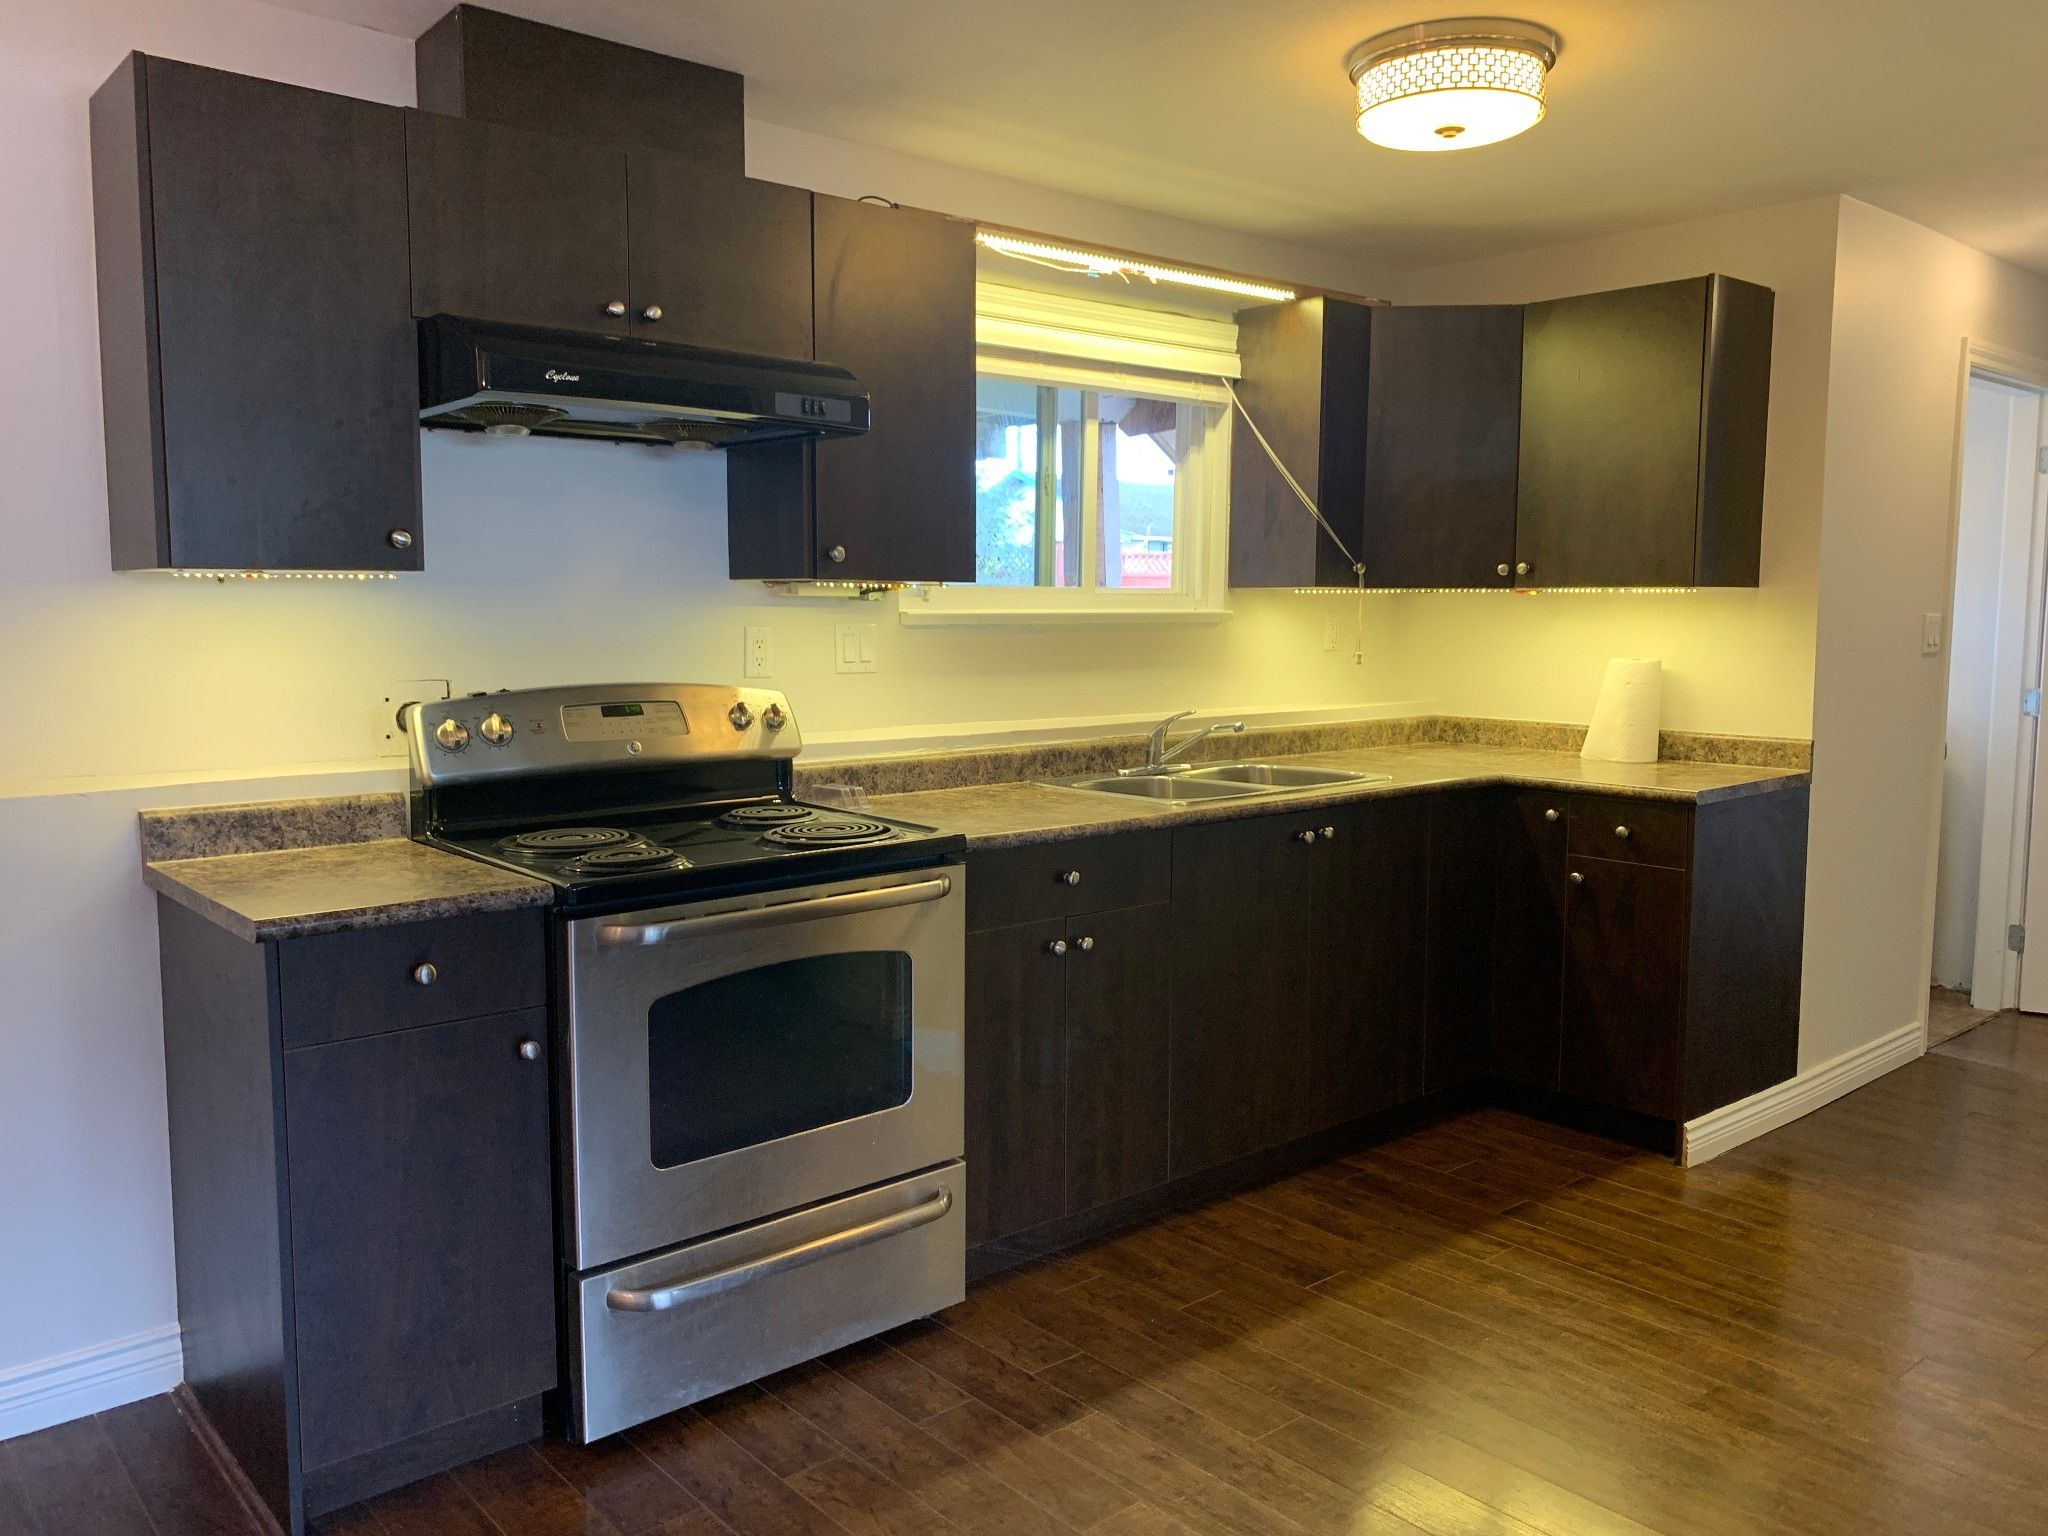 Main Photo: BSMT 32042 Melmar Ave. in Abbotsford: Abbotsford West Condo for rent